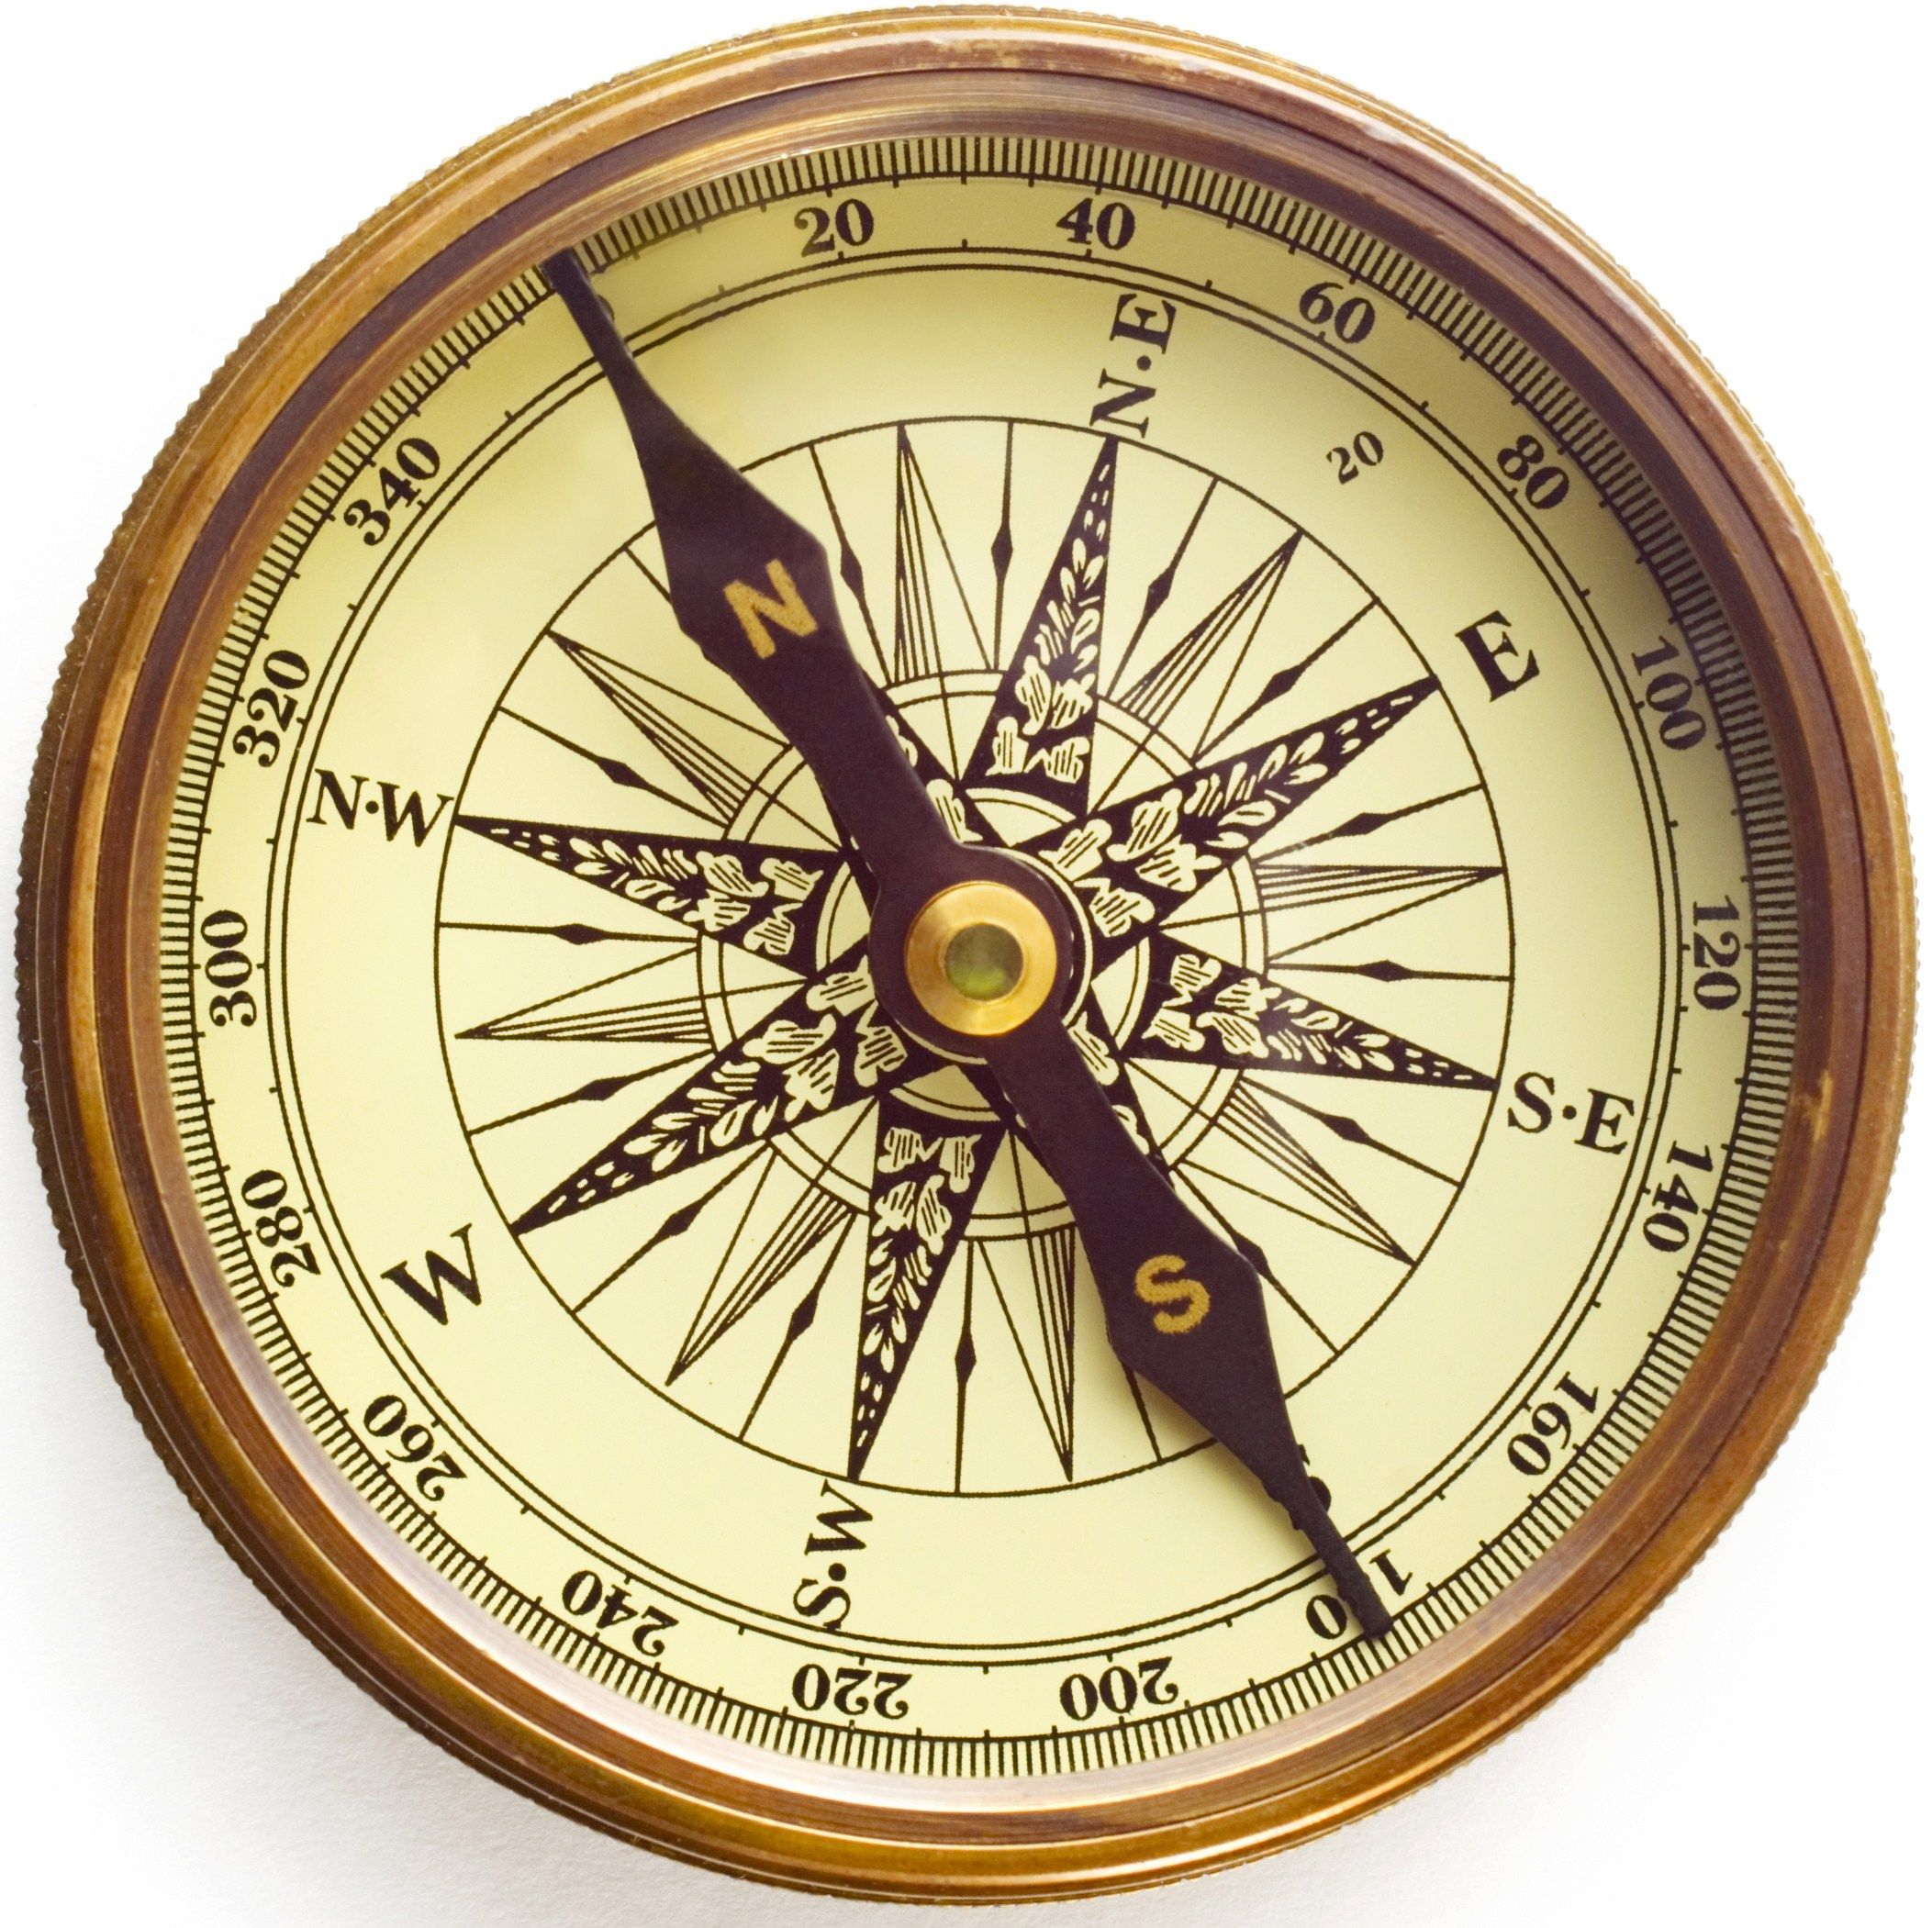 vintage compass pointing north - Google Search | Compass Designs ...